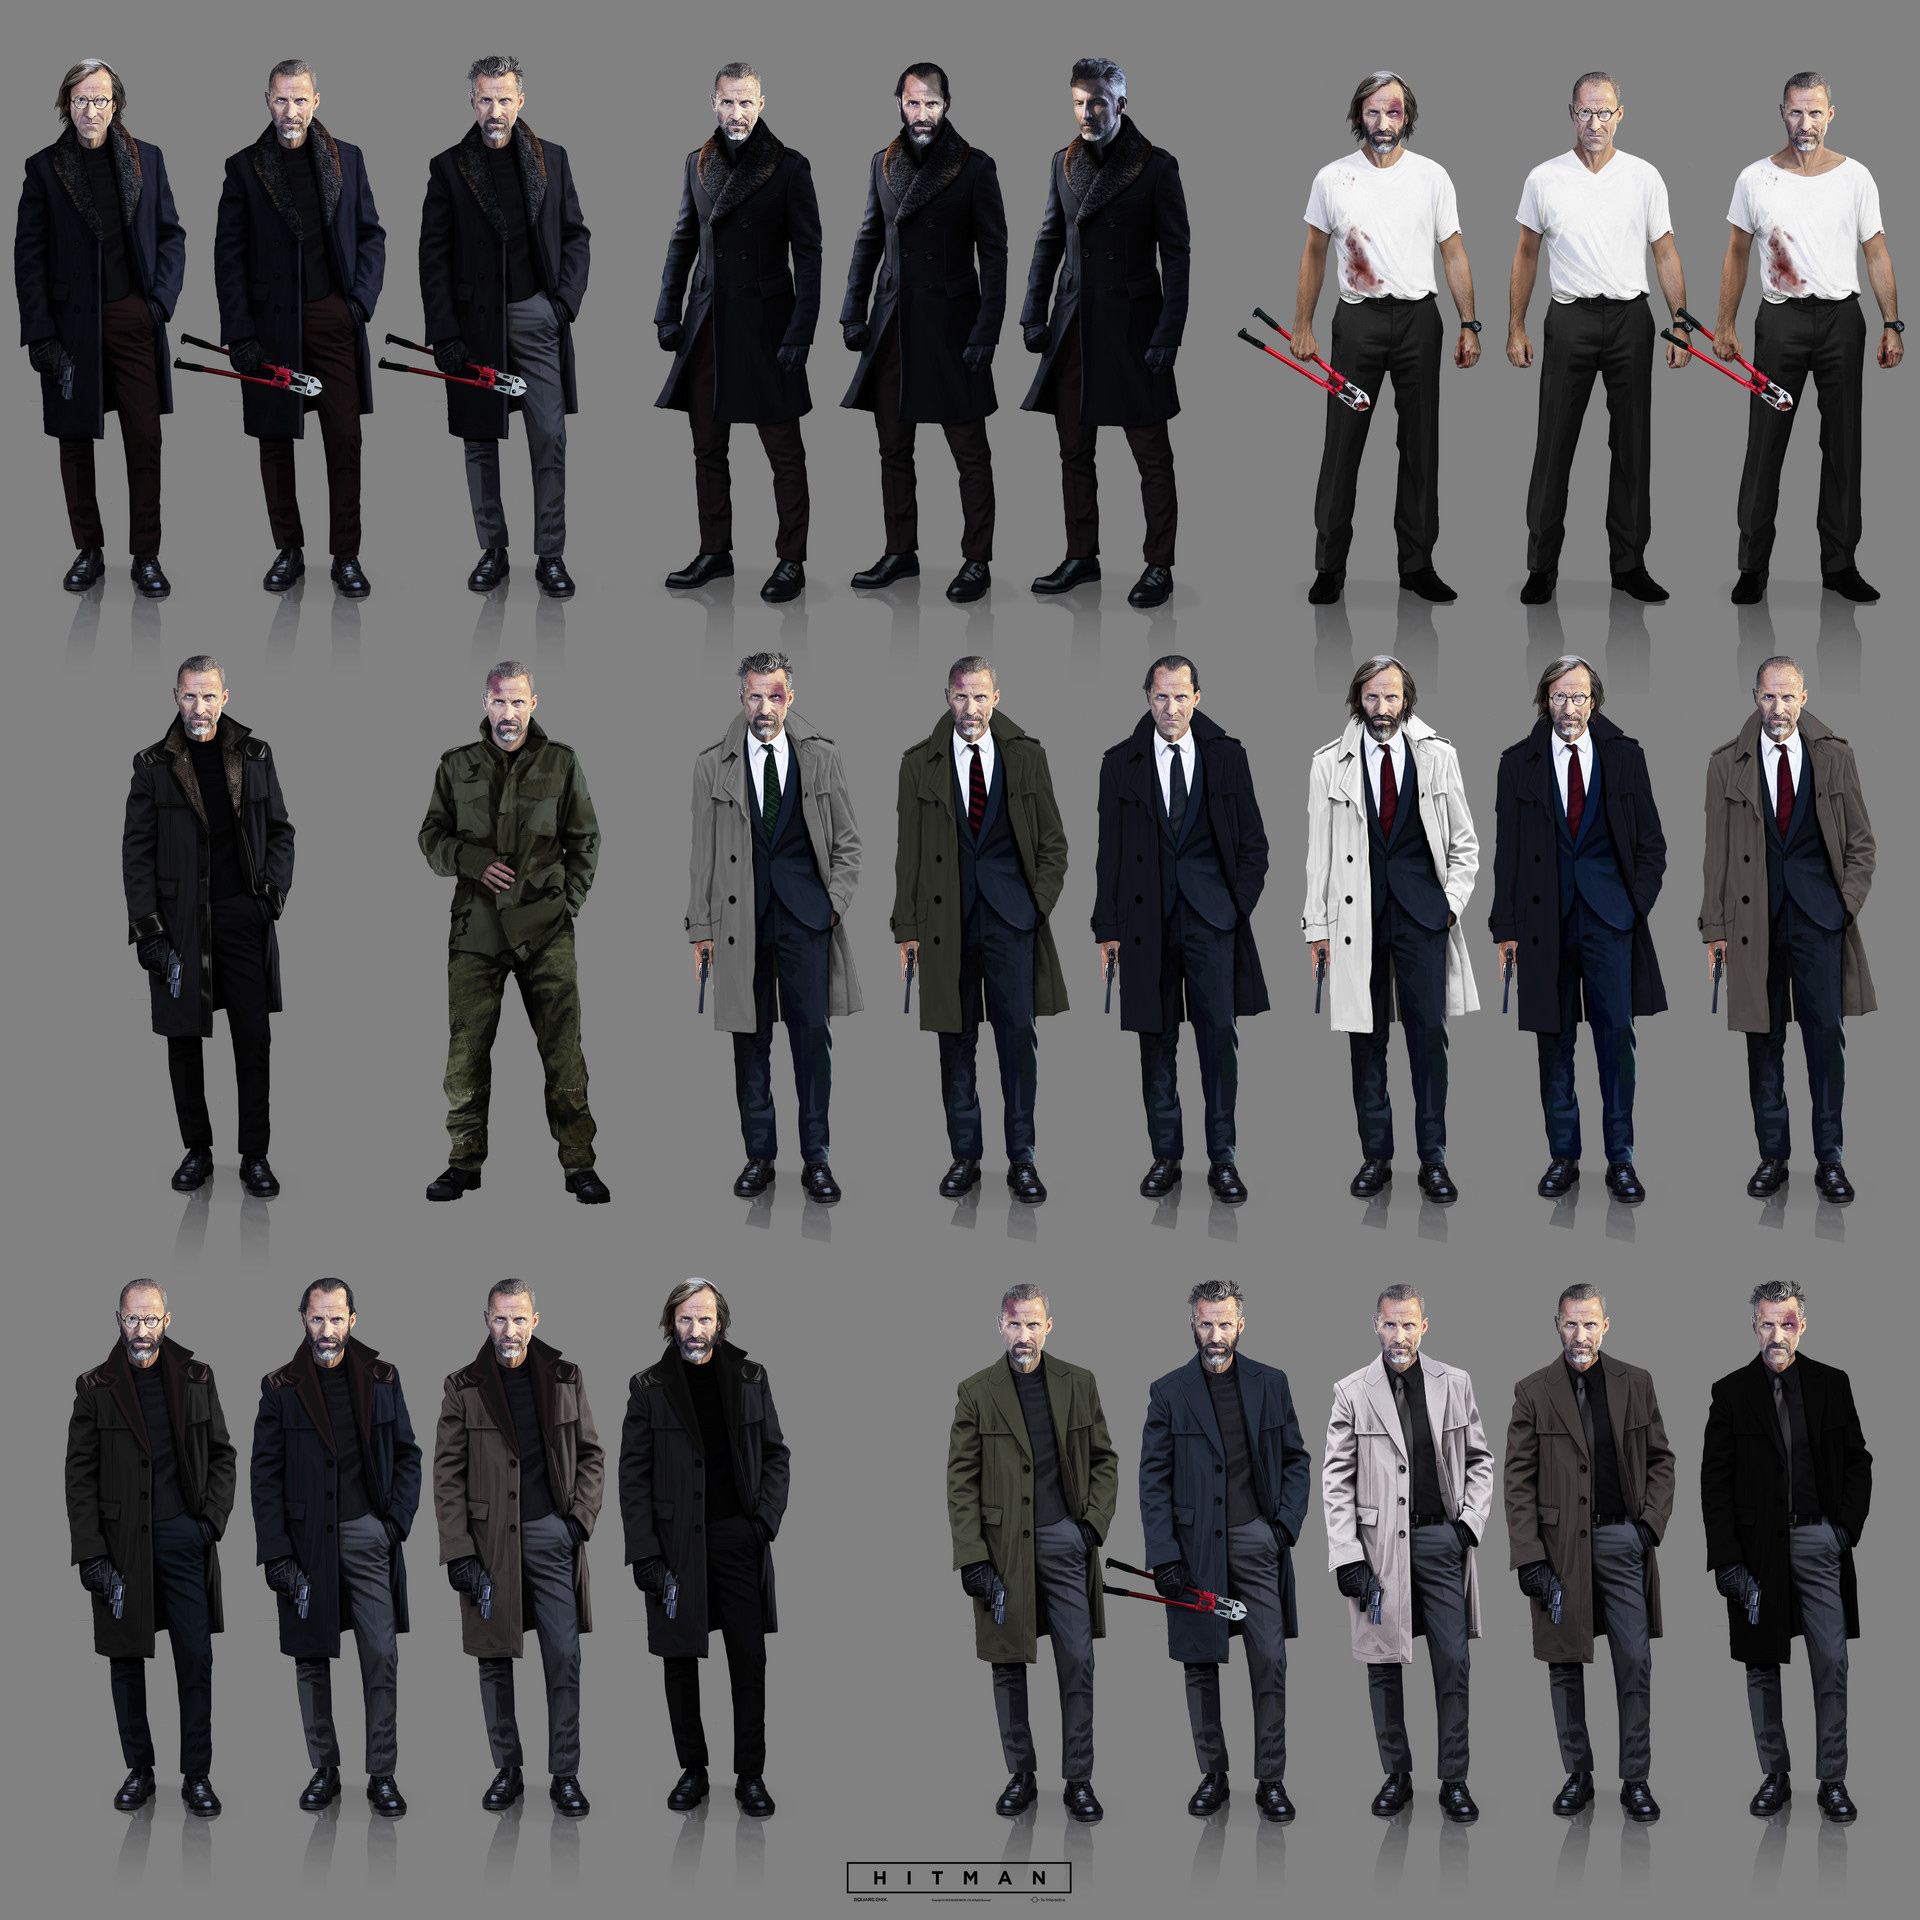 Hitman Character Concept Art by Simon Lindwall